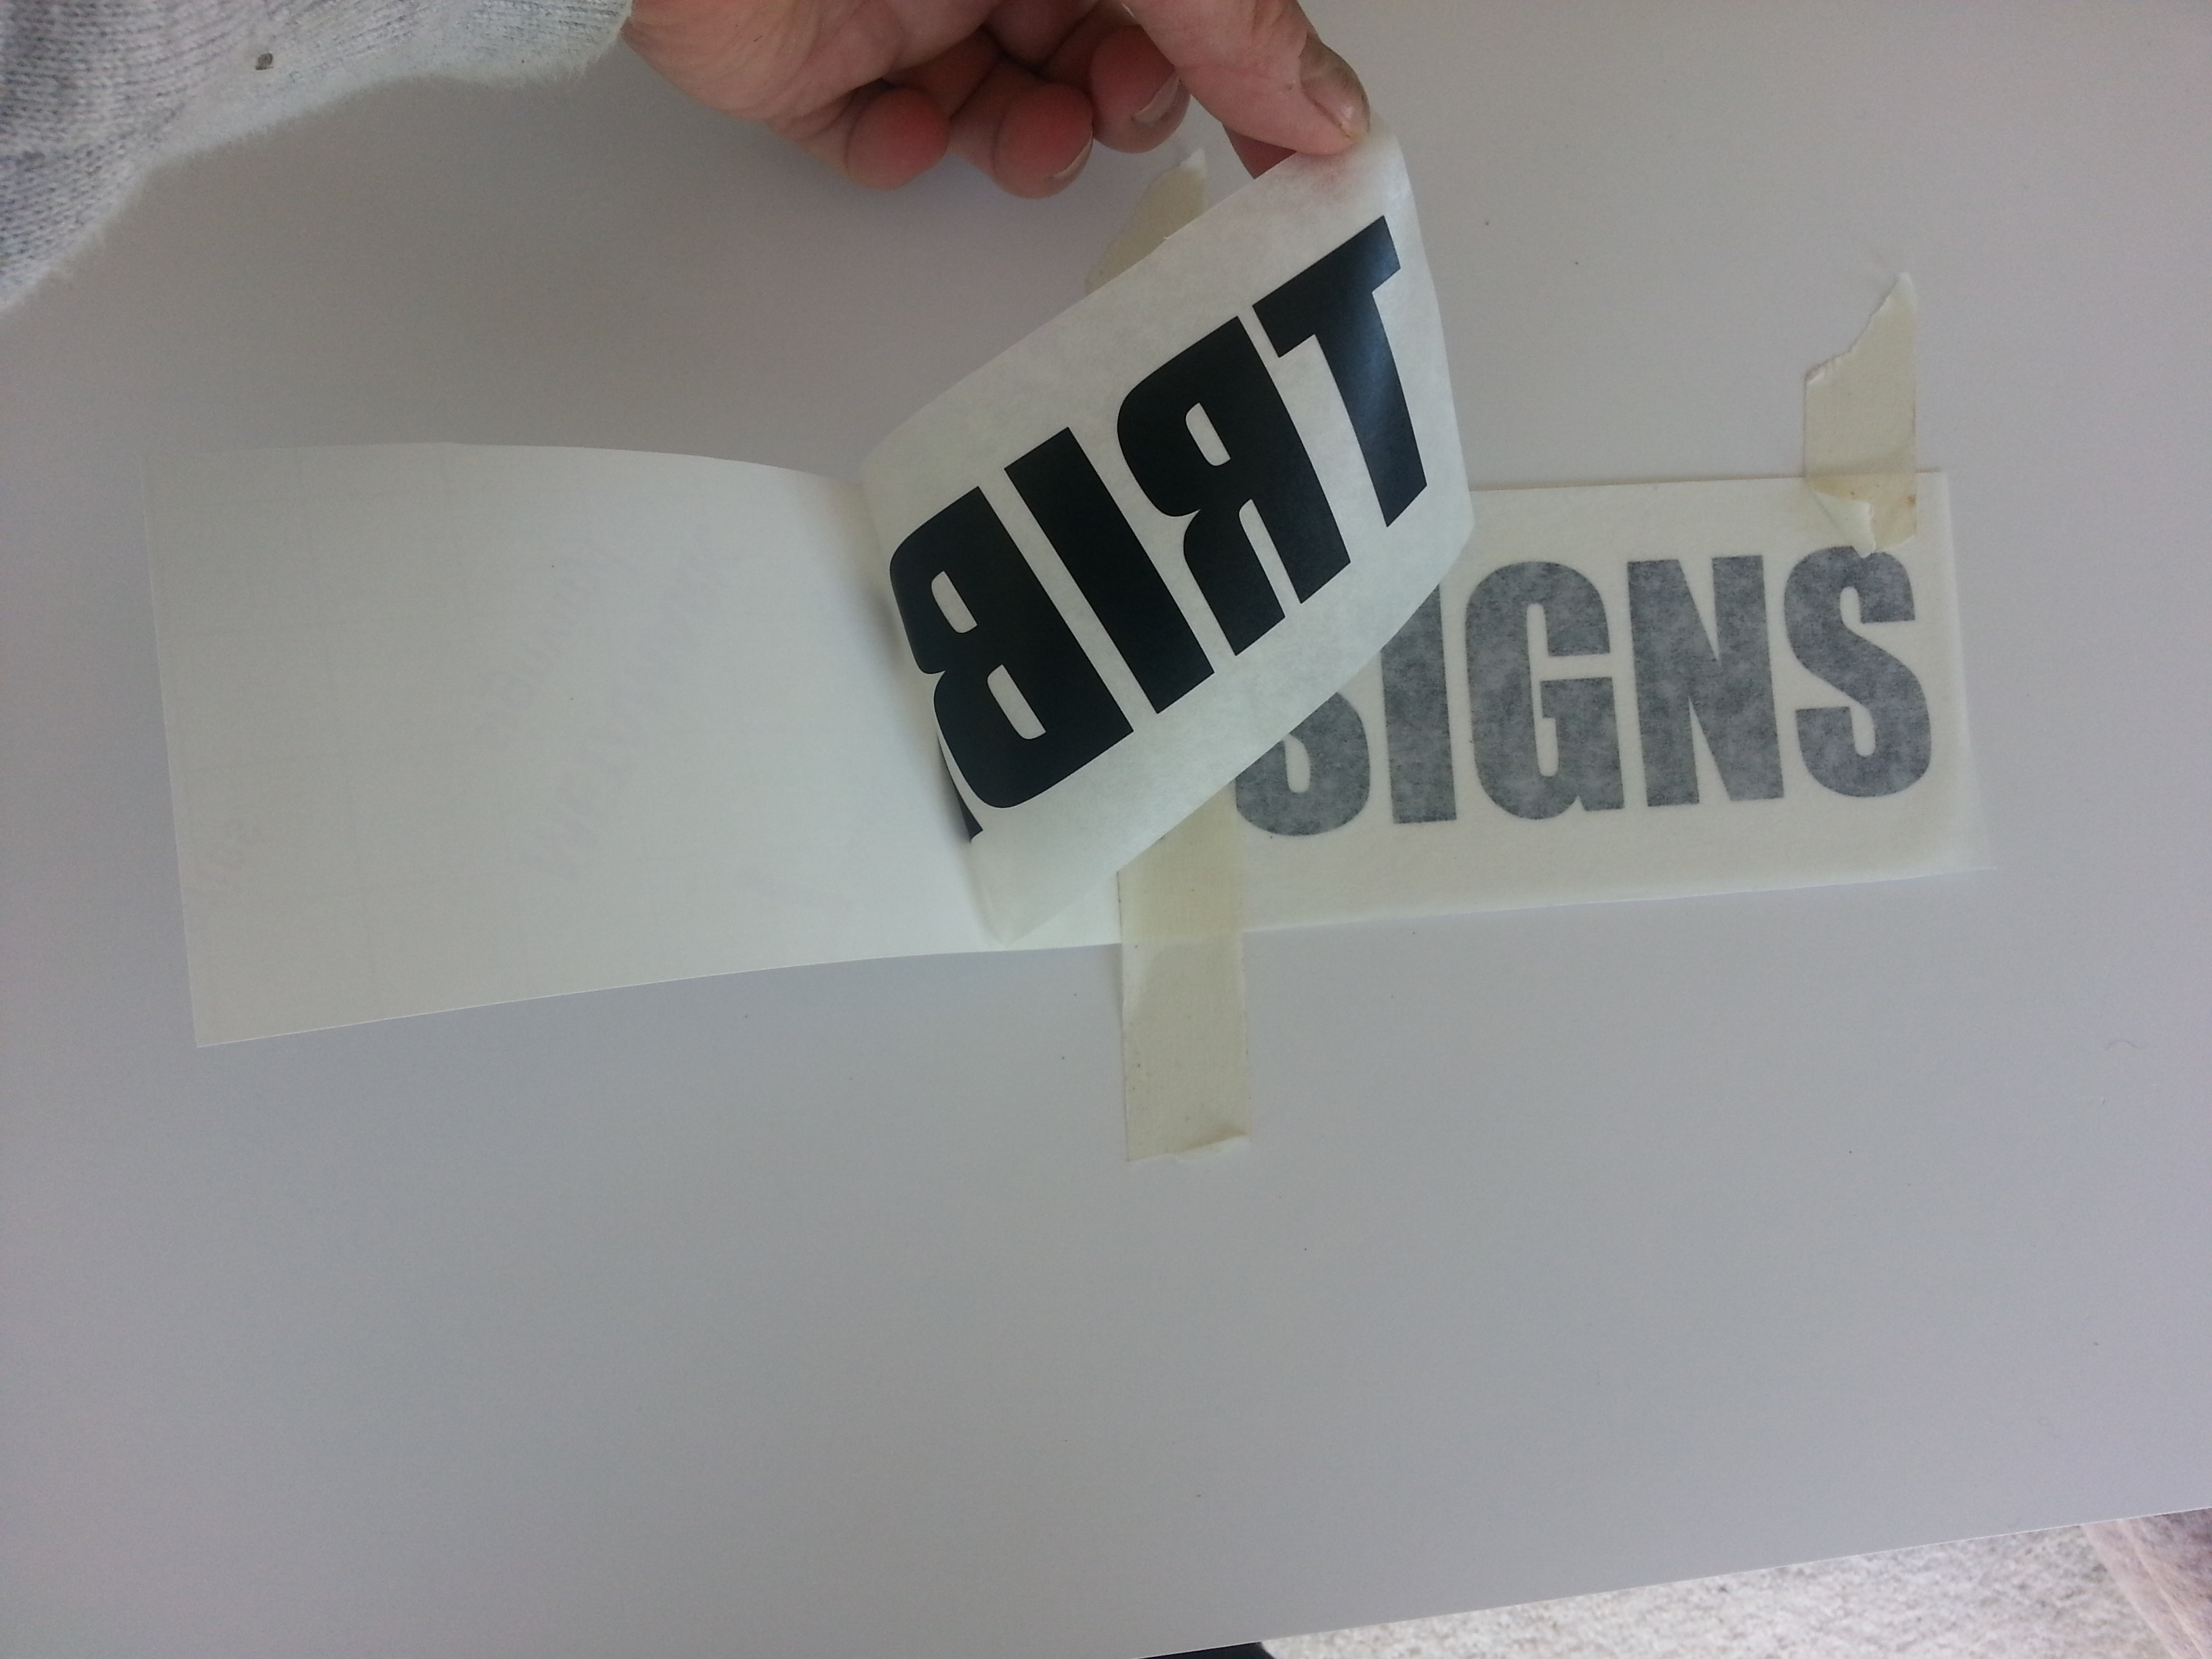 vinyl lettering example showing backing paper, application tape and the vinyl